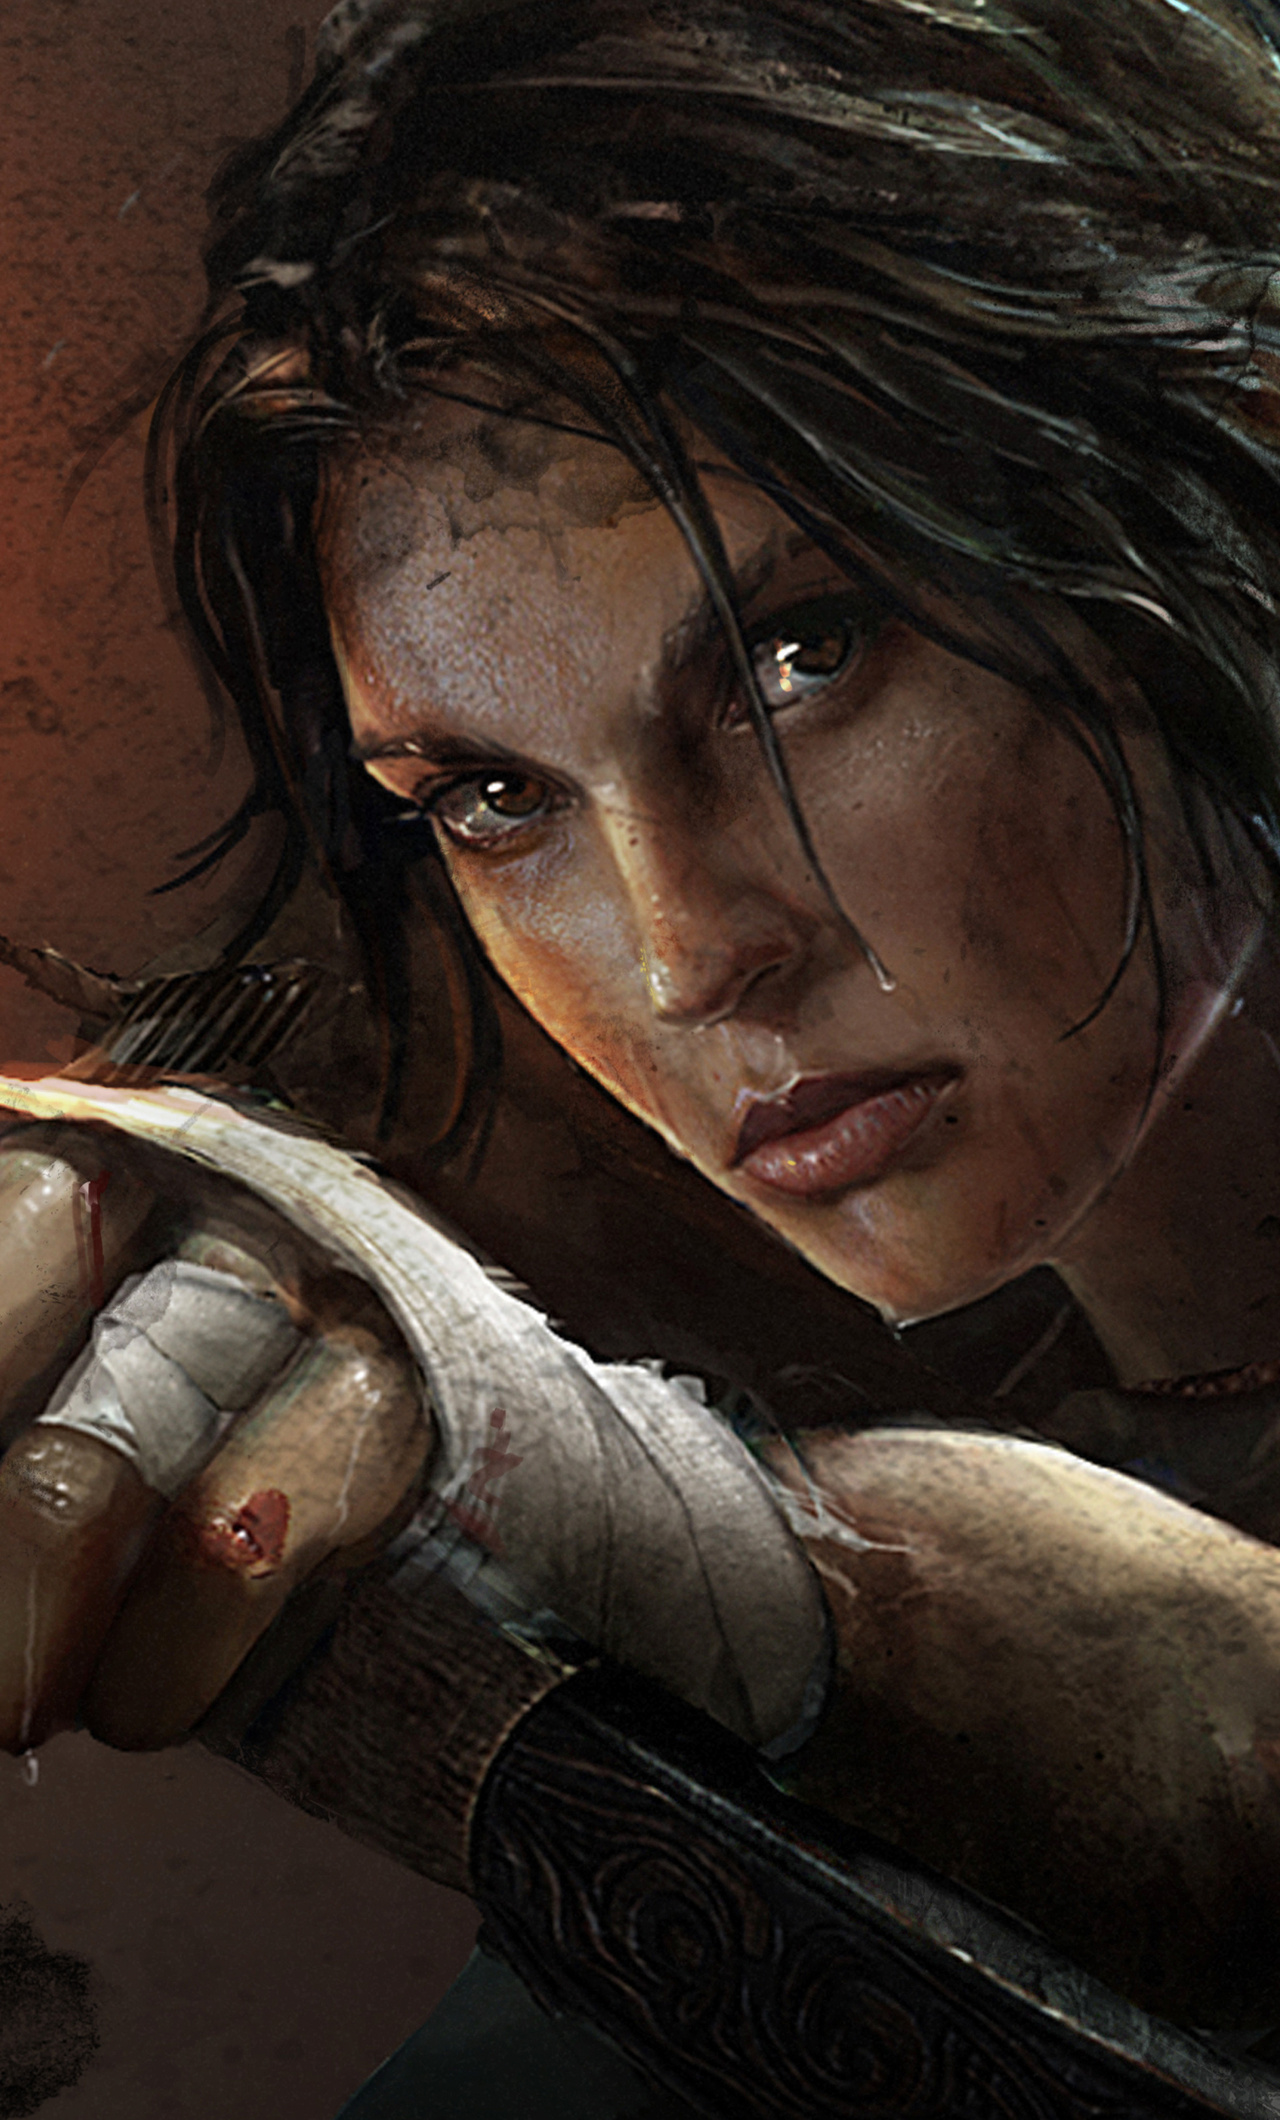 tomb-raider-lara-croft-artwork-4k-58.jpg